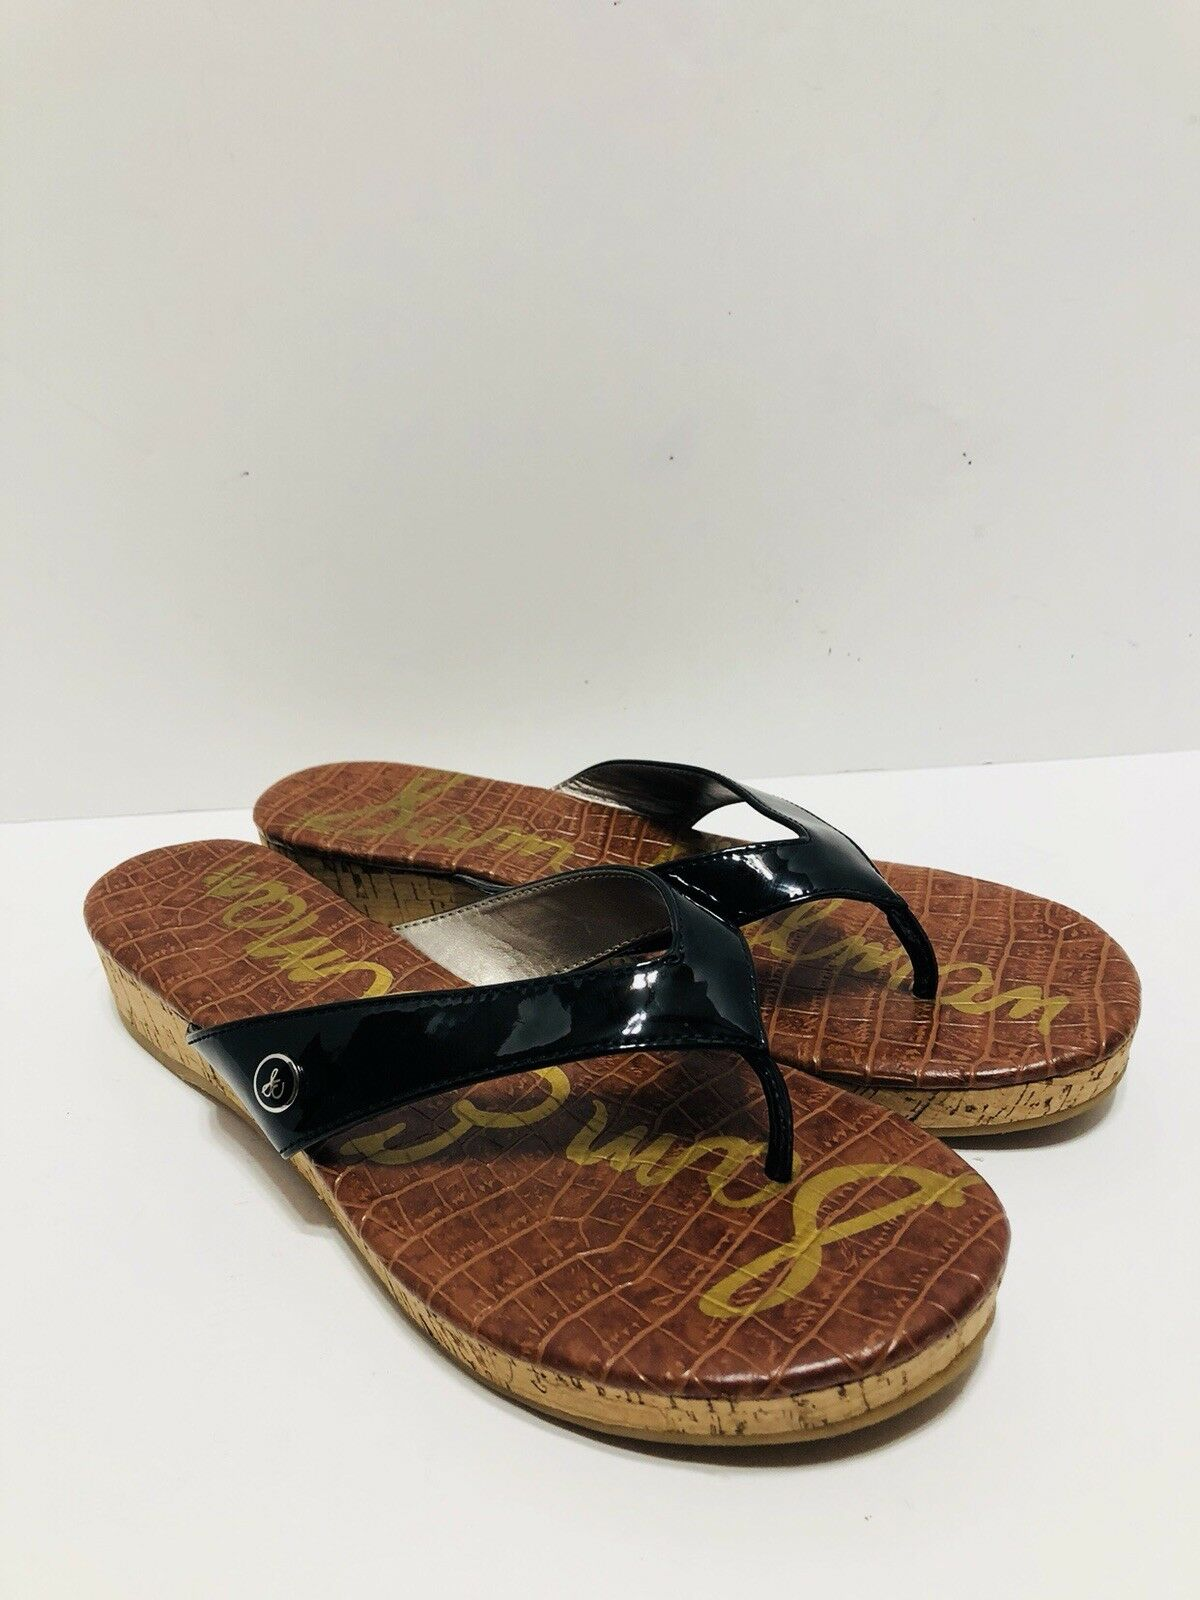 Sam Edelman Tanya Black Patent Leather Cork Wedge Flip Flops Women Size 8.5 EUC